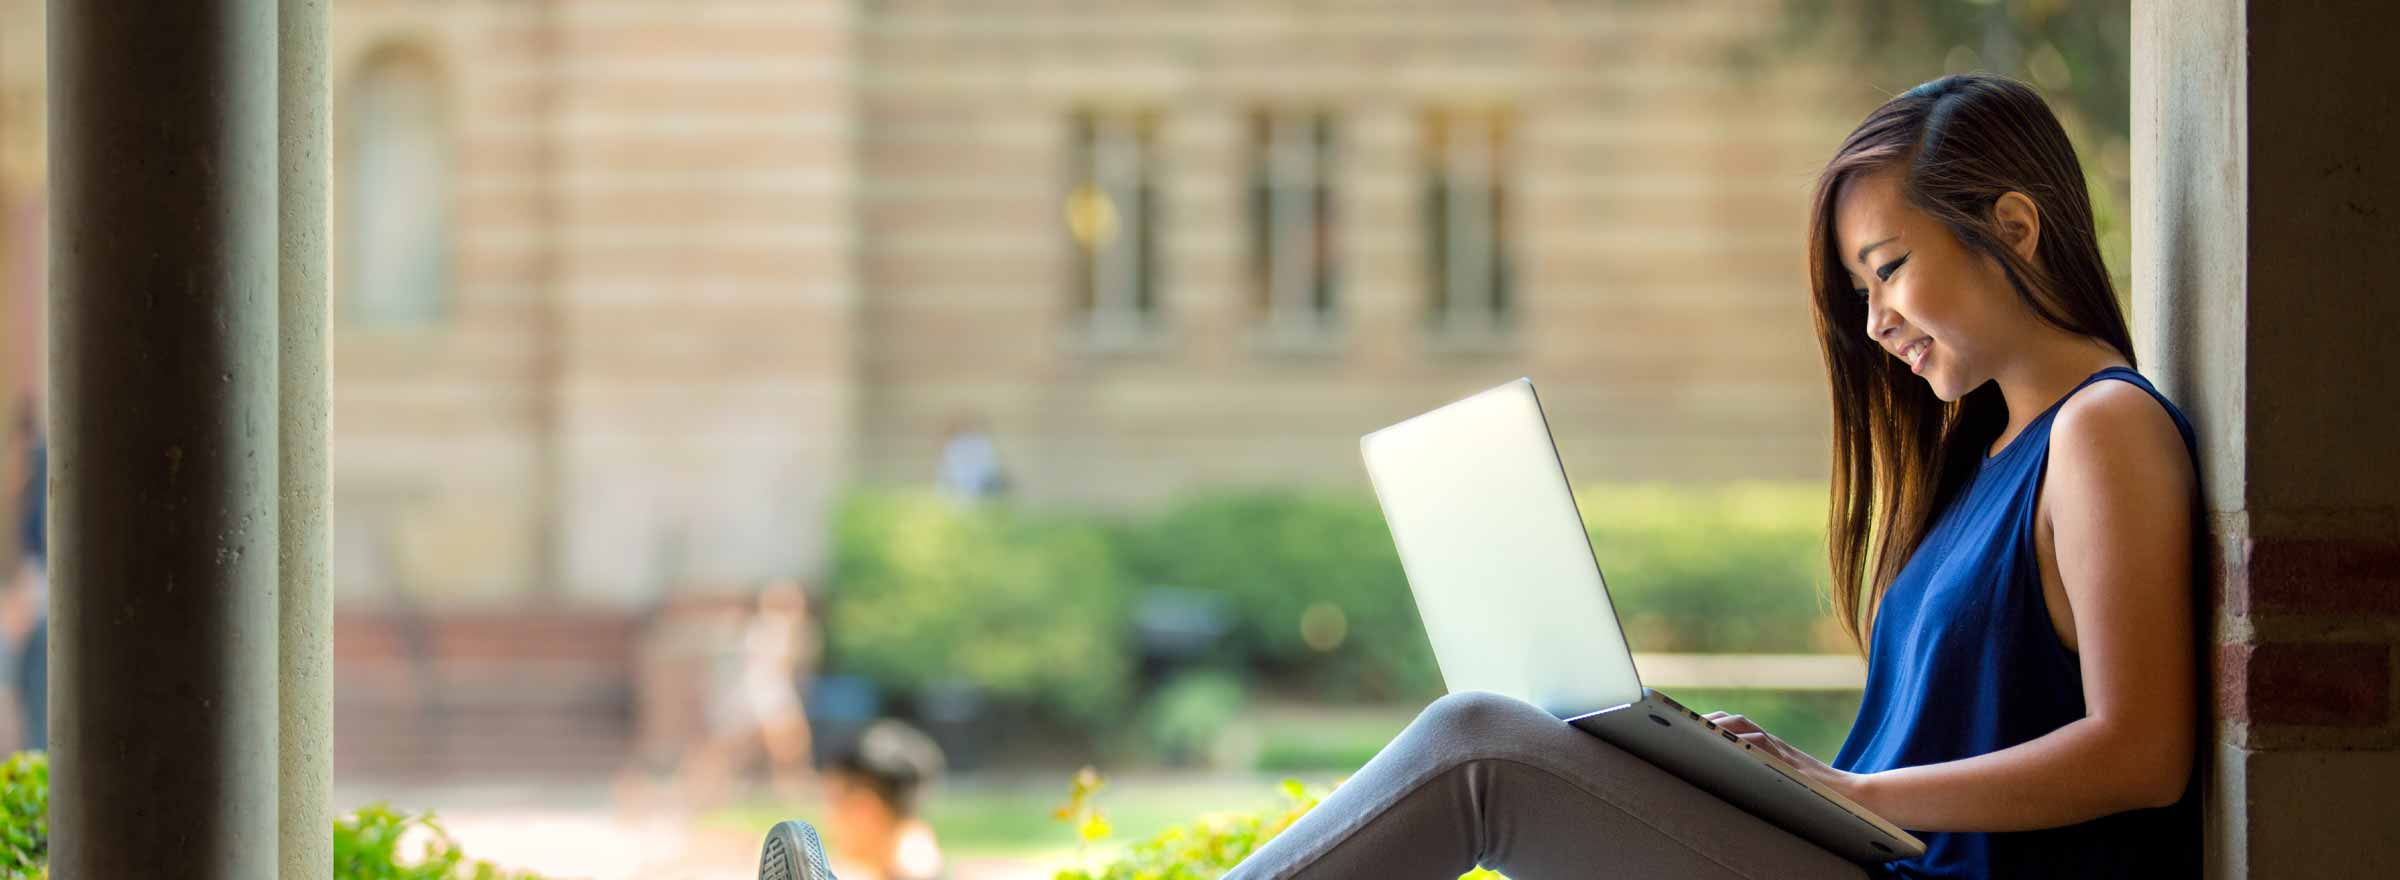 woman sitting in a library window using a laptop